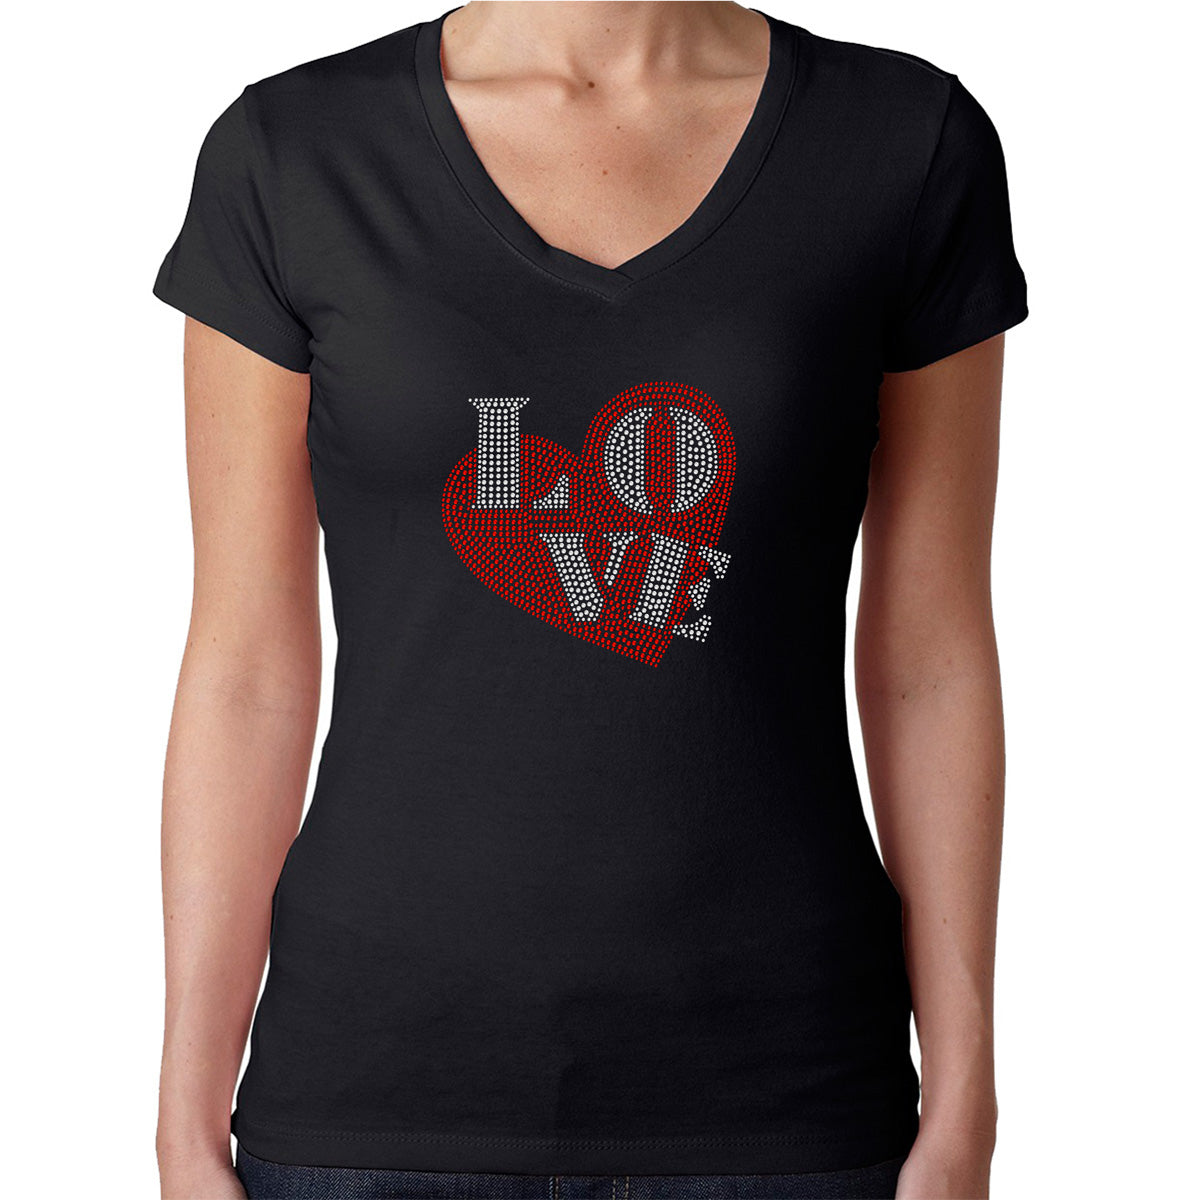 Womens T-Shirt Rhinestone Bling Black Tee Love Heart Red Valentine